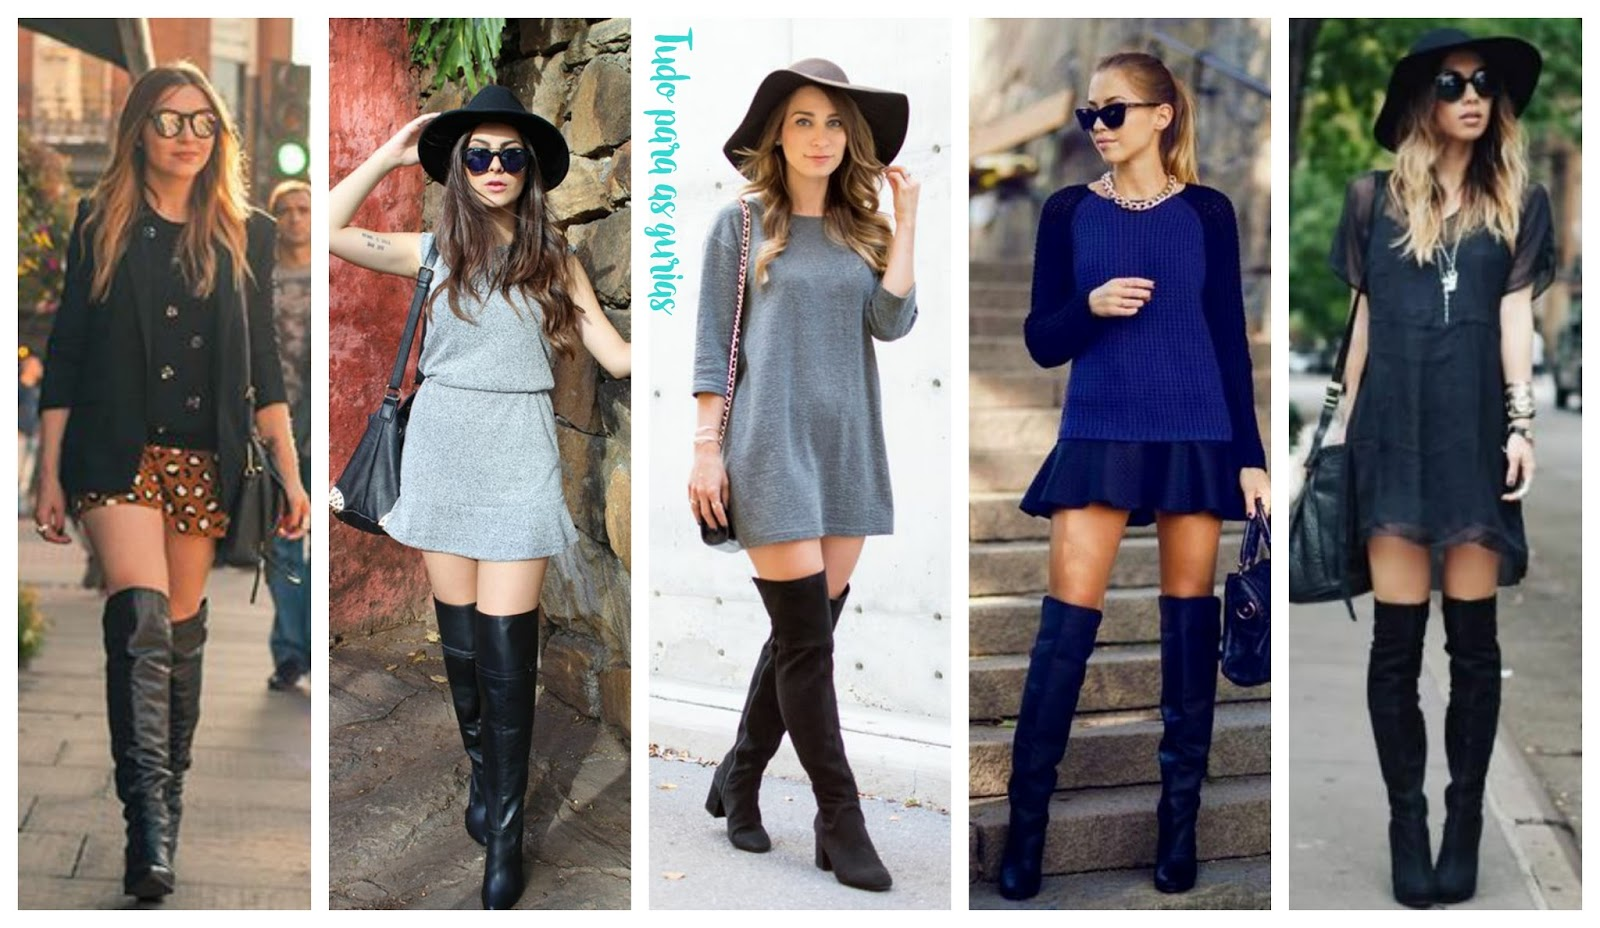 Especial: Botas Over the Knee.